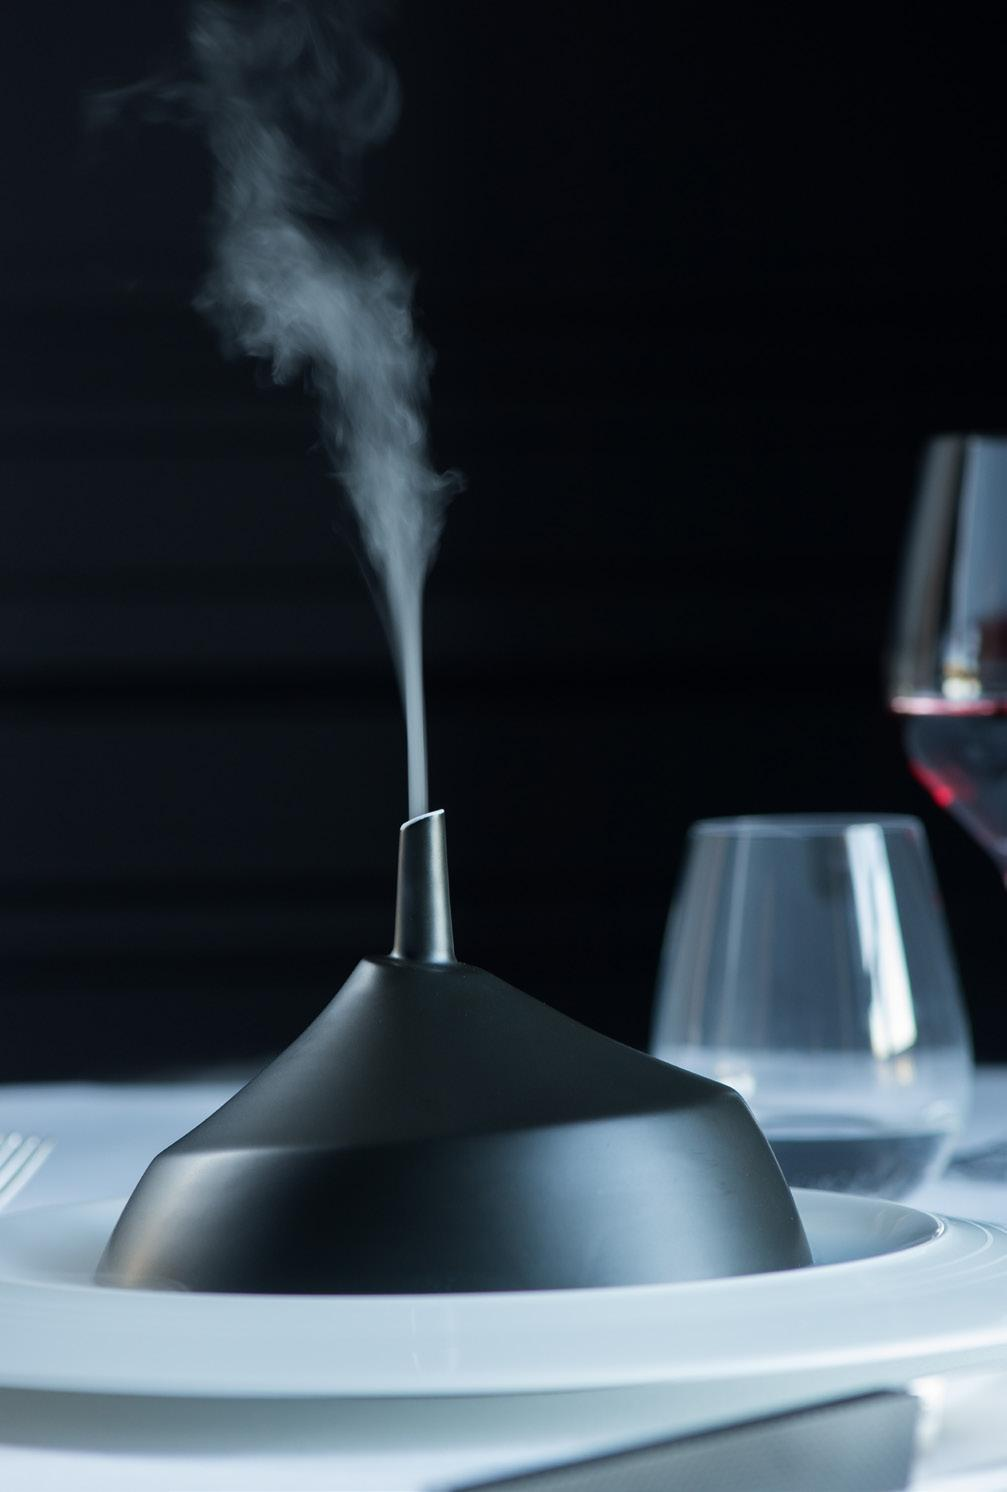 The perforations provide an outlet for steam to escape, like elegant mist. - Cloche with chimney. Allowing steam and aromas to escape- an allusion to a hot oven.